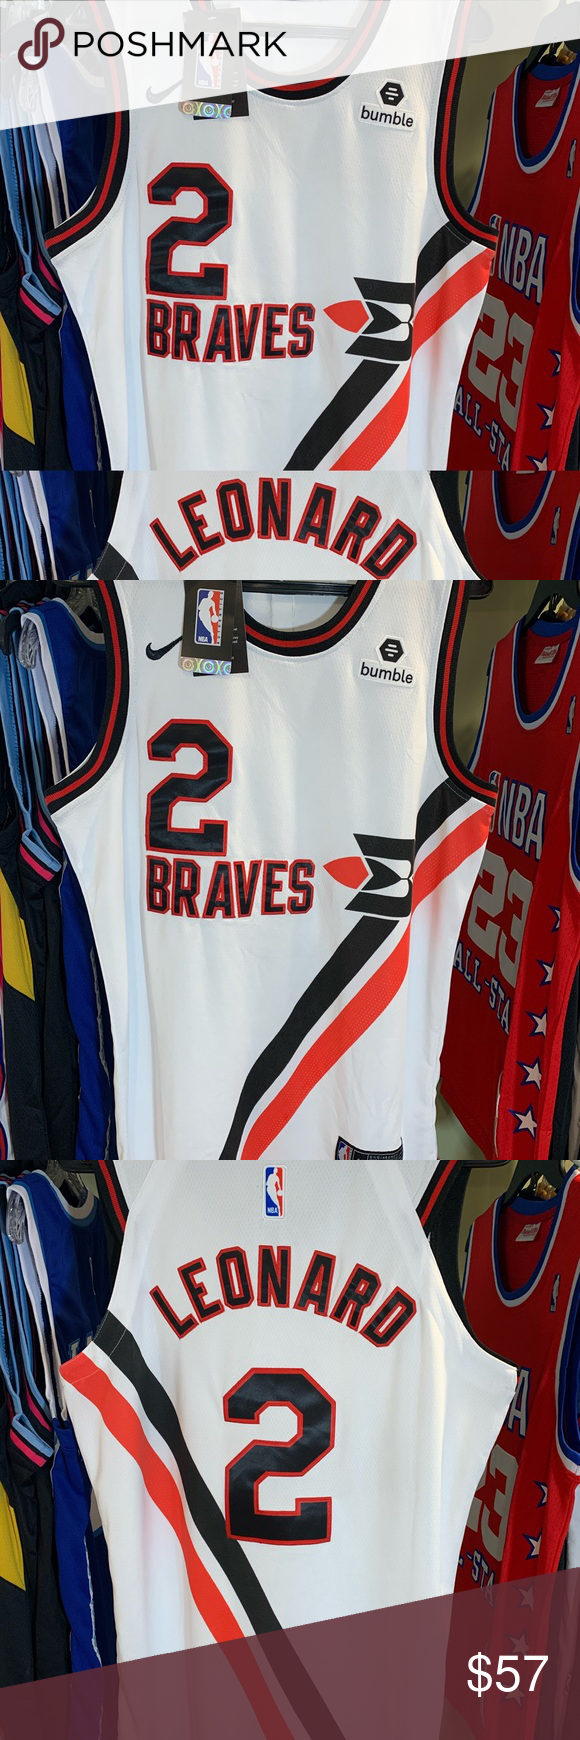 Kawhi Leonard Buffalo Braves Throwback Jersey Los Angeles Clippers New Classic Edition Jersey Vintage Look To When They Used To Braves Jersey Nike Shirts